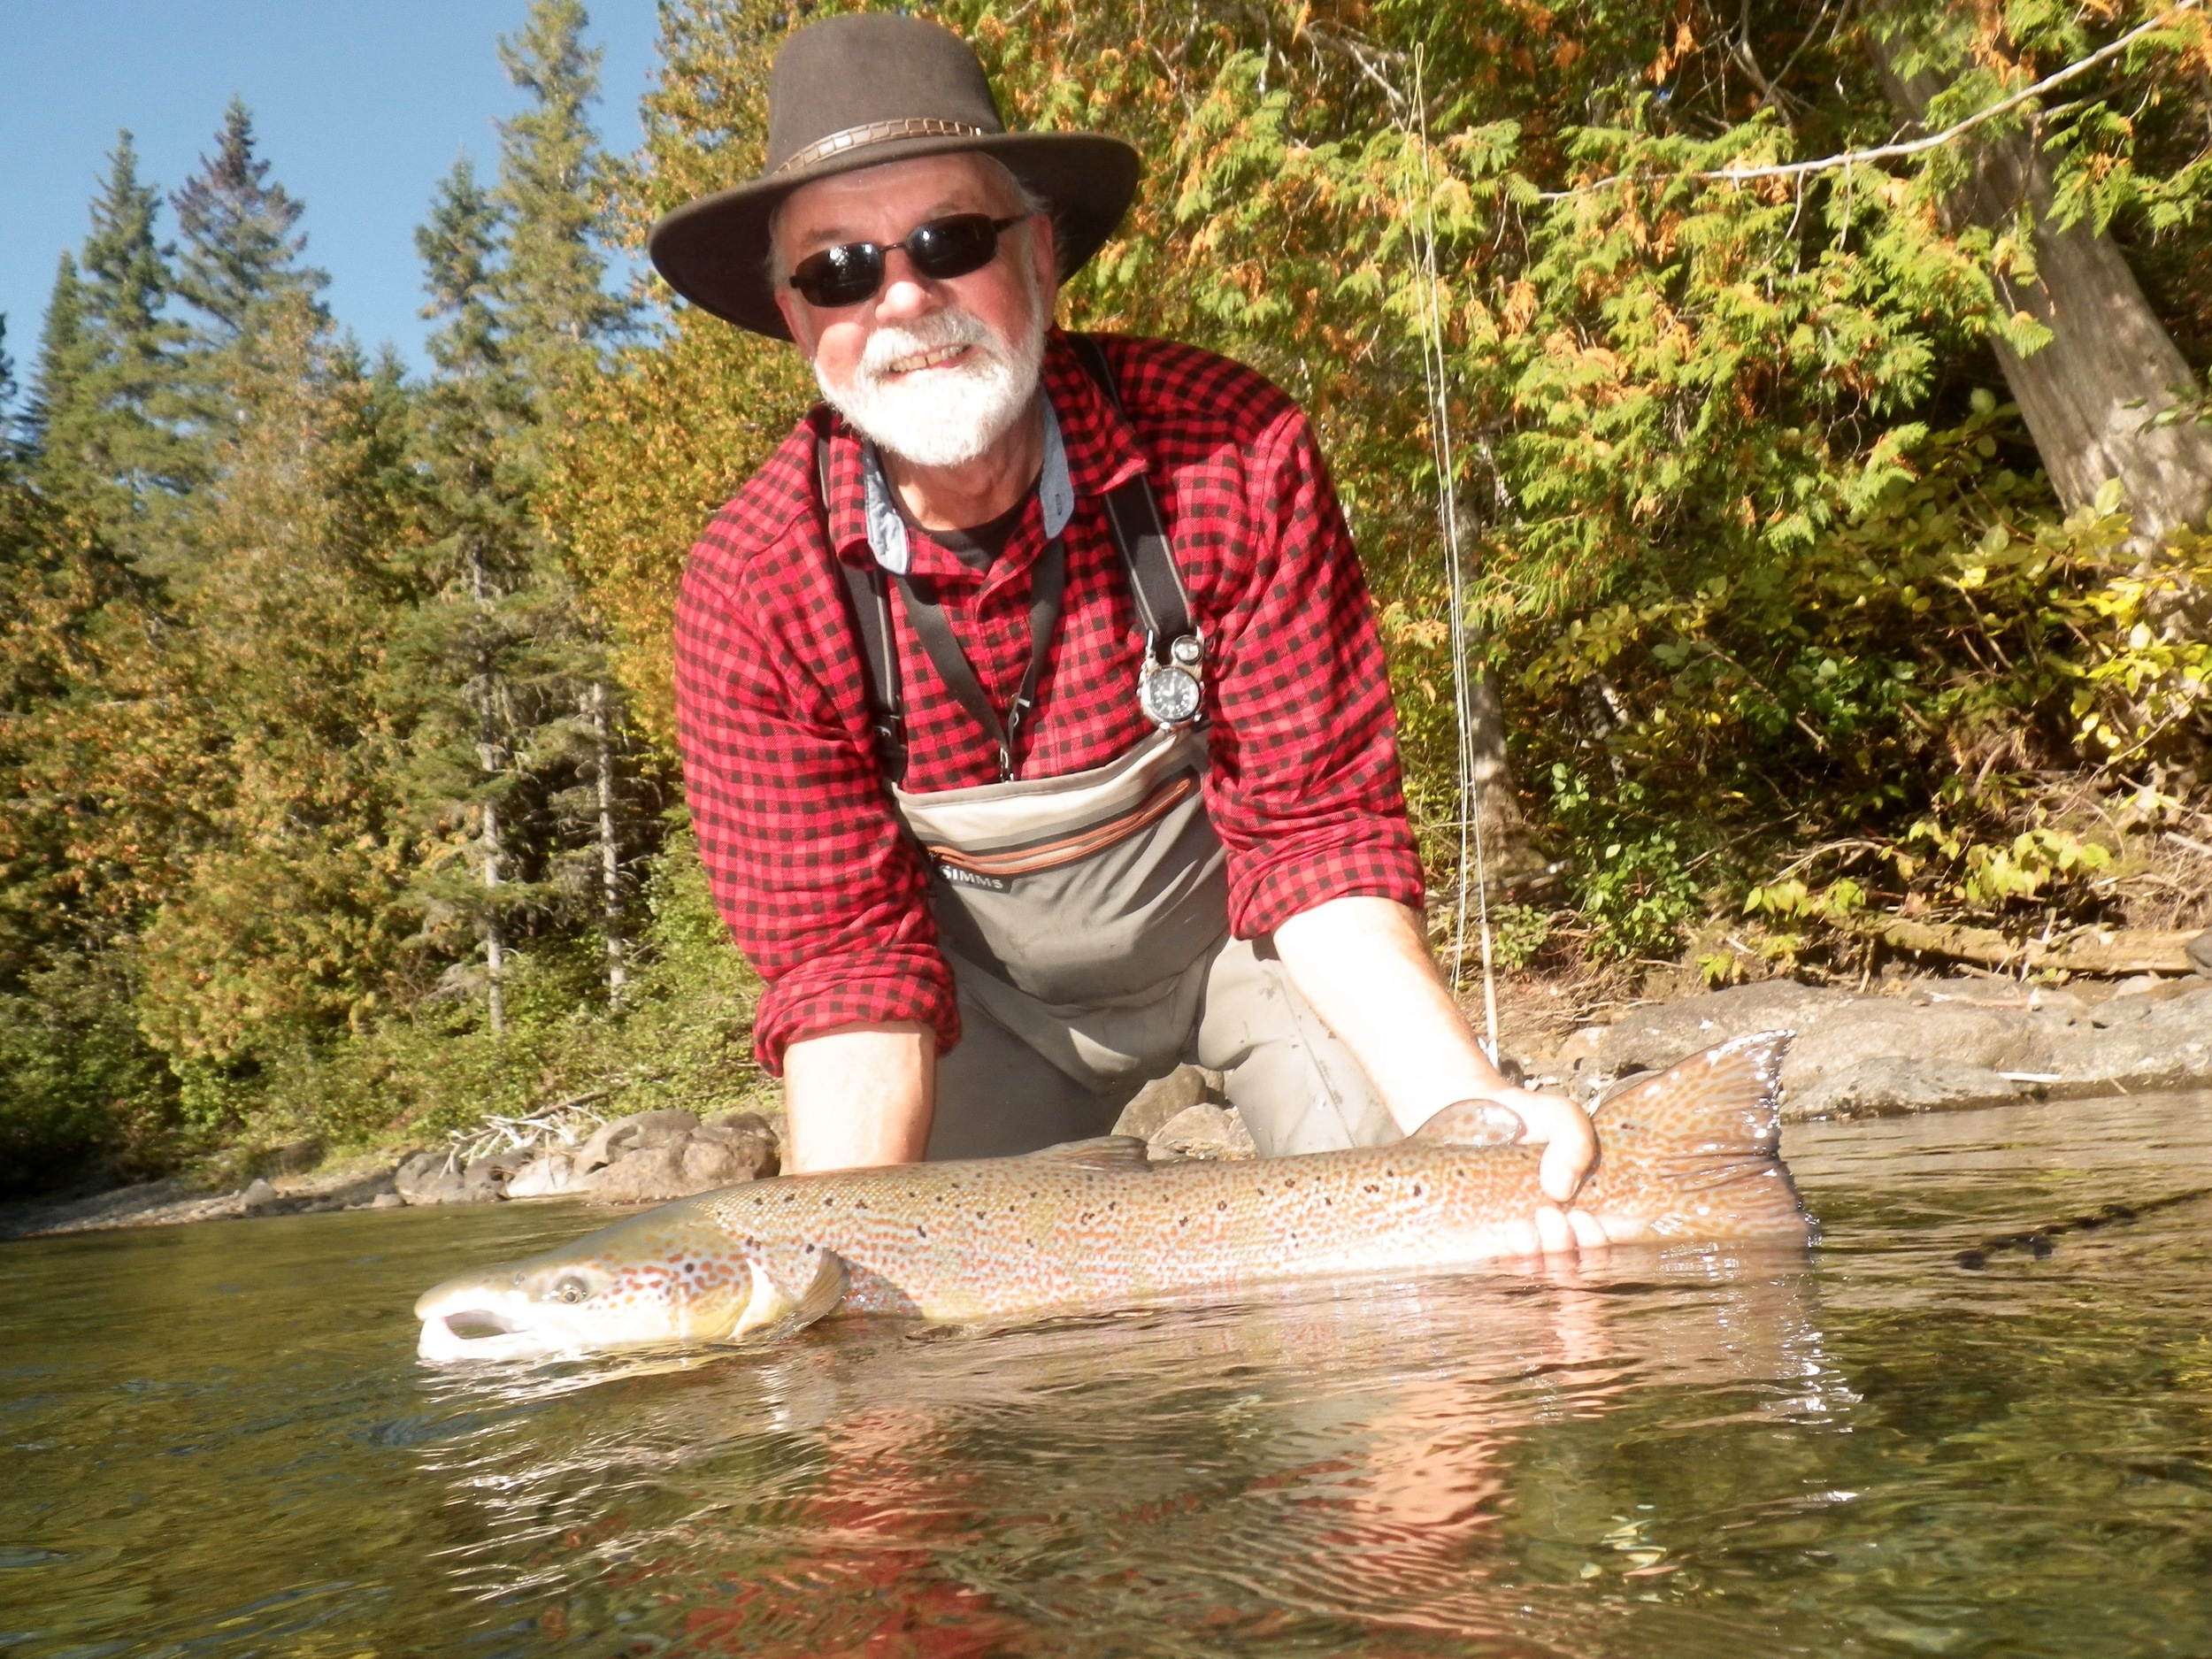 Randy Spencer is an accomplished author, conservationist and guide, most of all is he a great guy and a heck of a salmon fisherman, nice fish Randy!